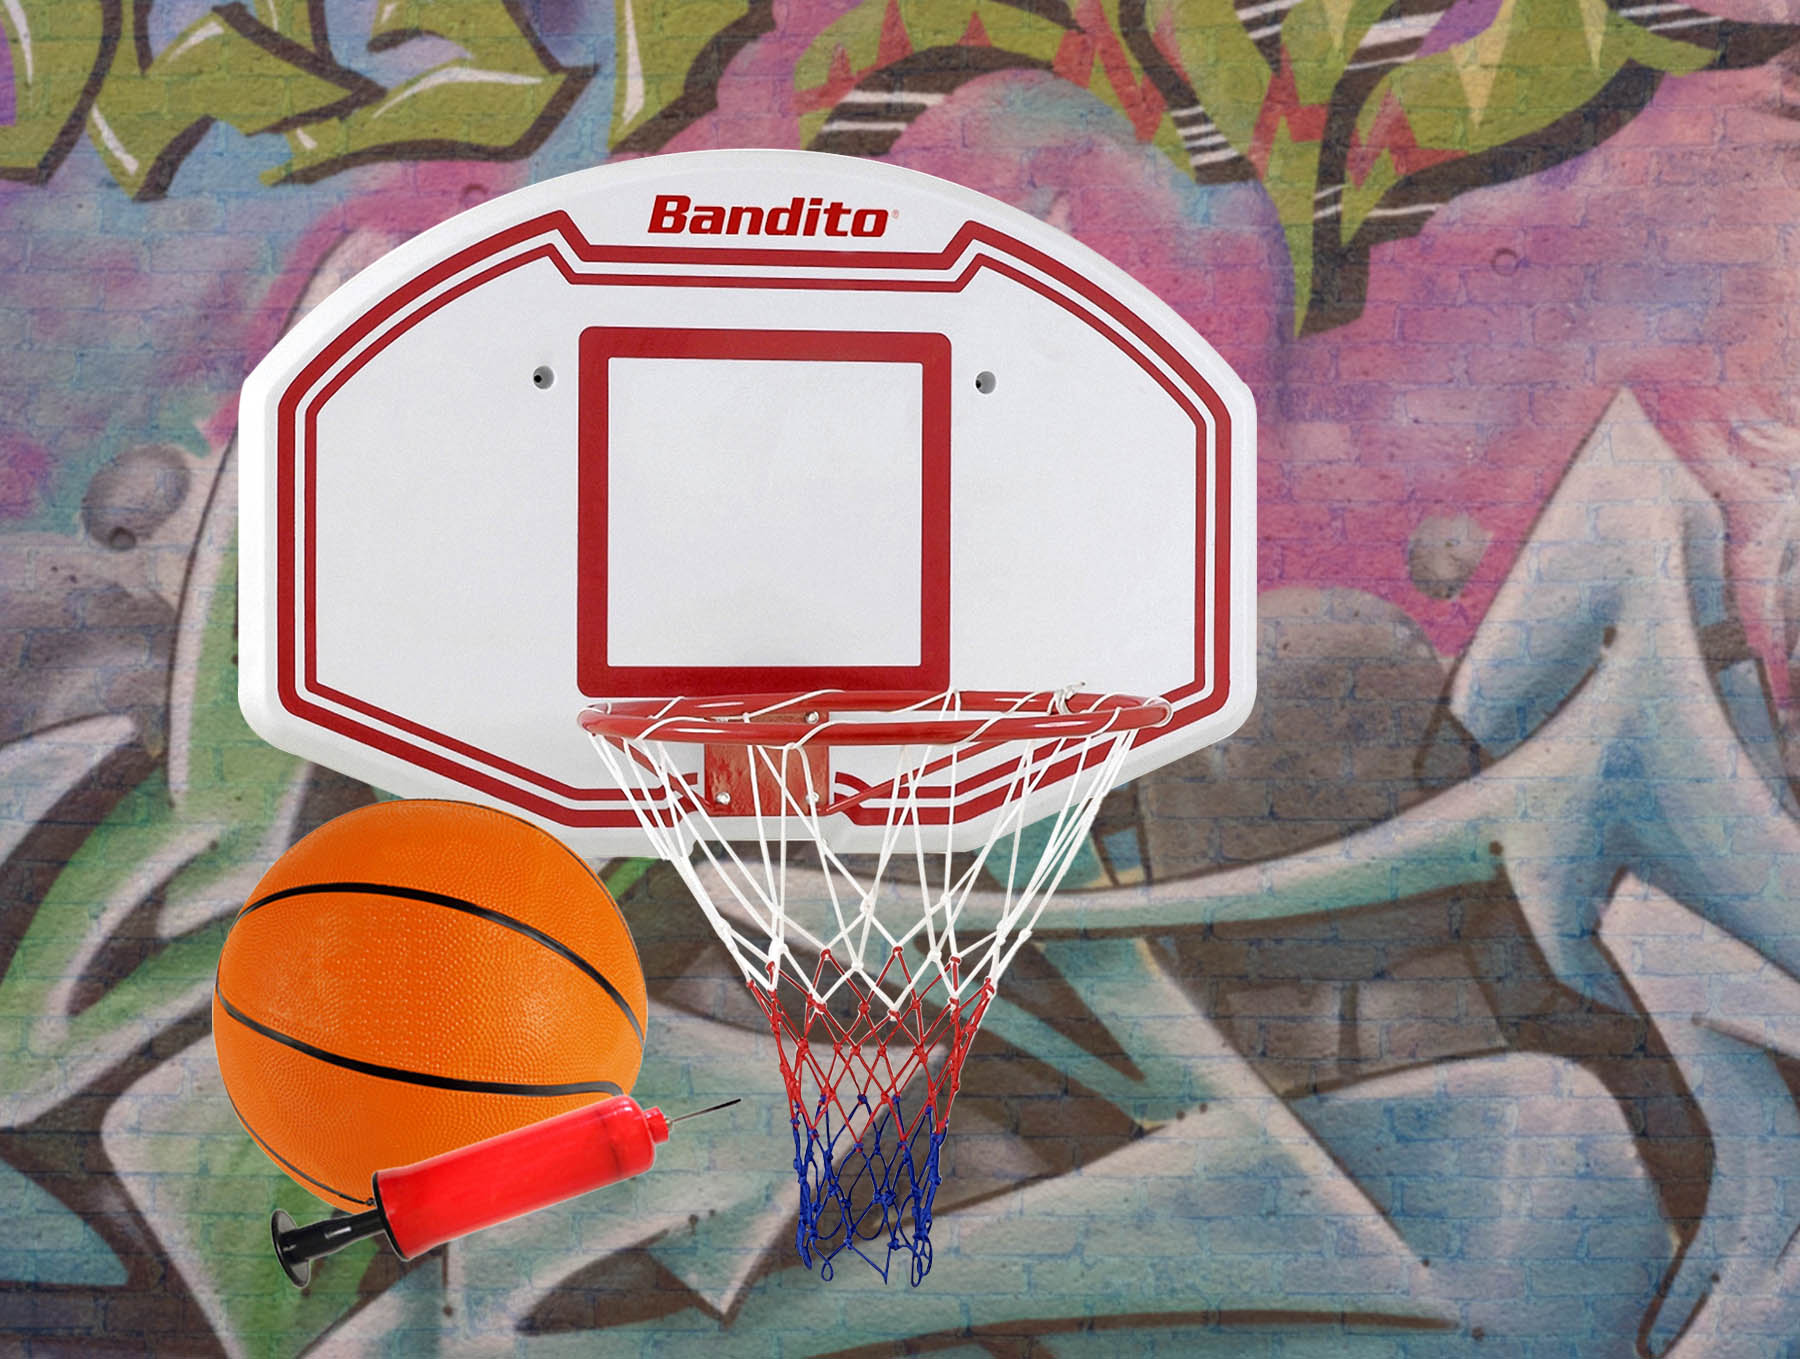 Bandito Basketballkorb